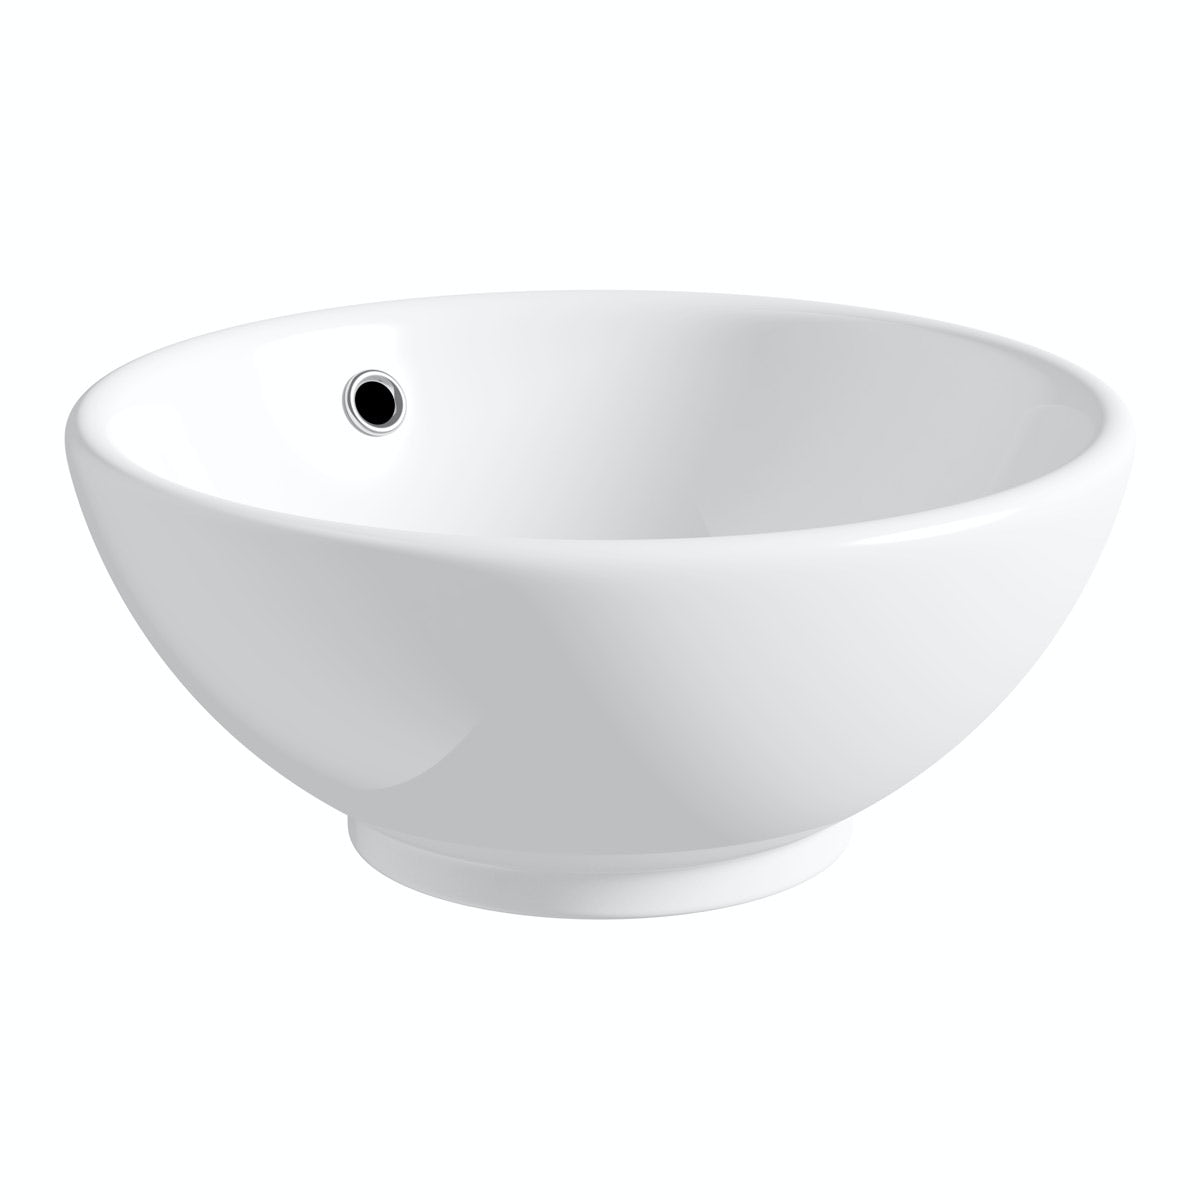 Orchard Eden countertop basin 400mm with waste